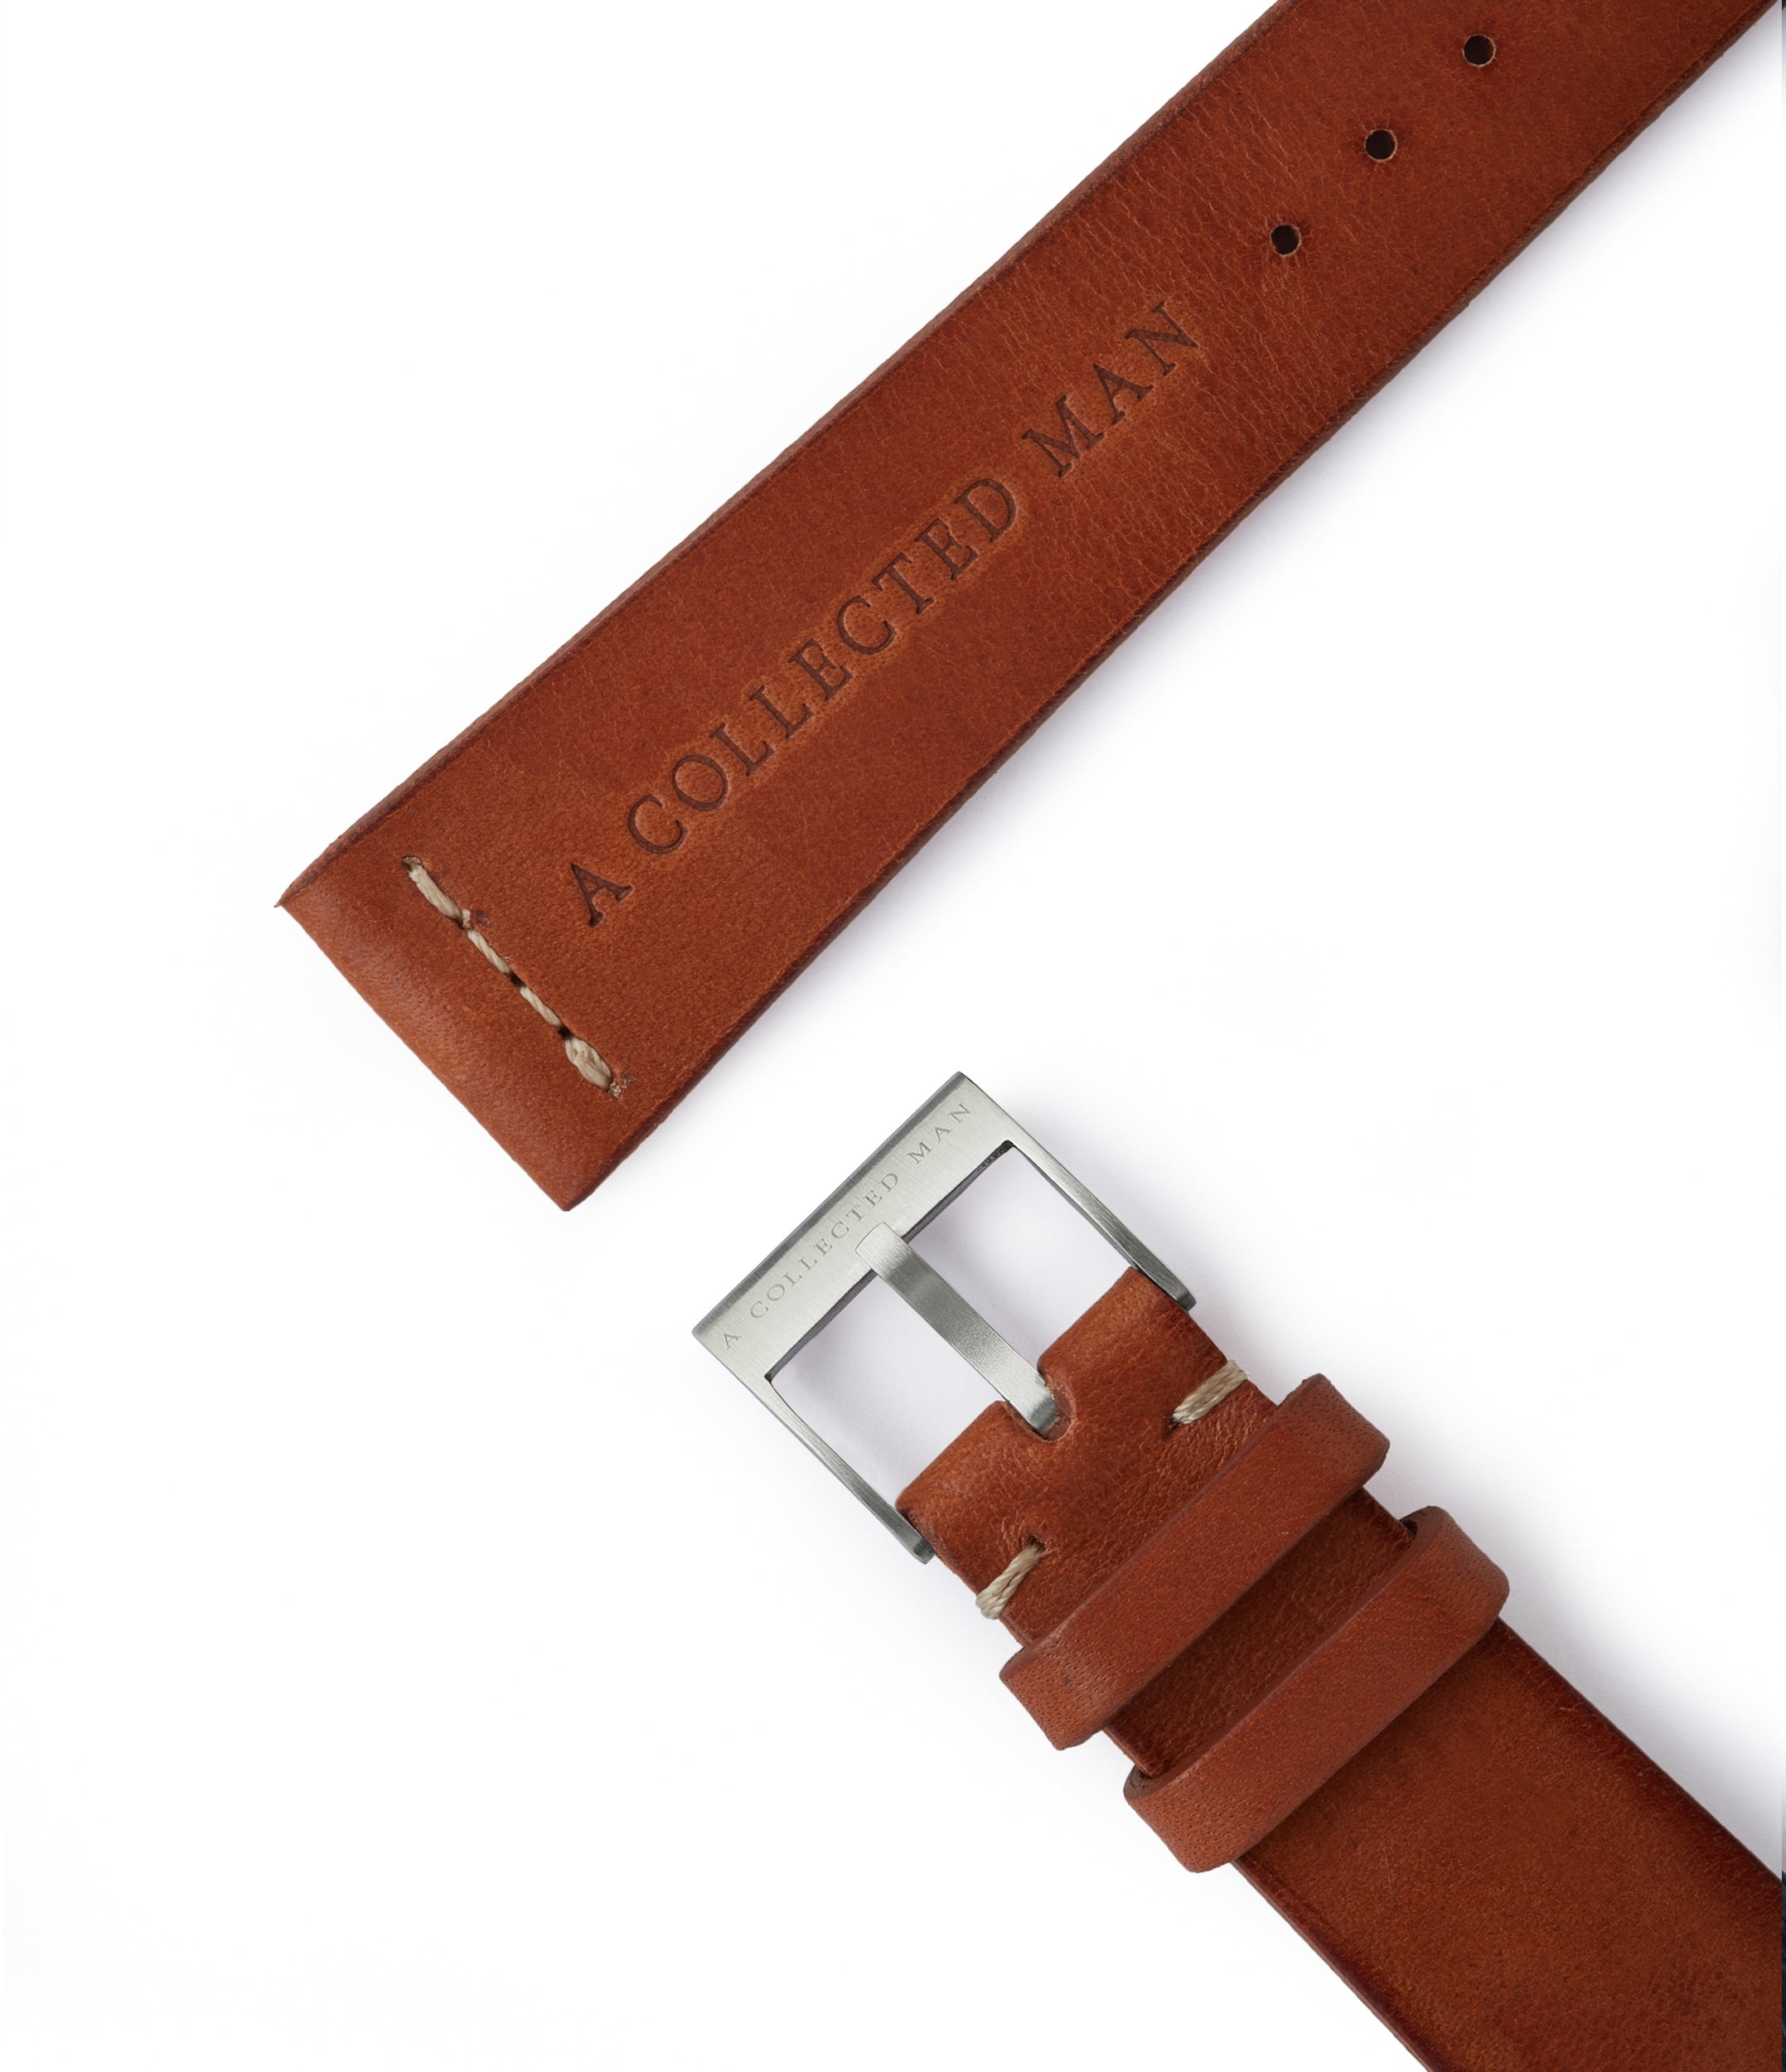 order vintage leather watch strap 18mm Siena JPM for sale order online at A Collected Man London